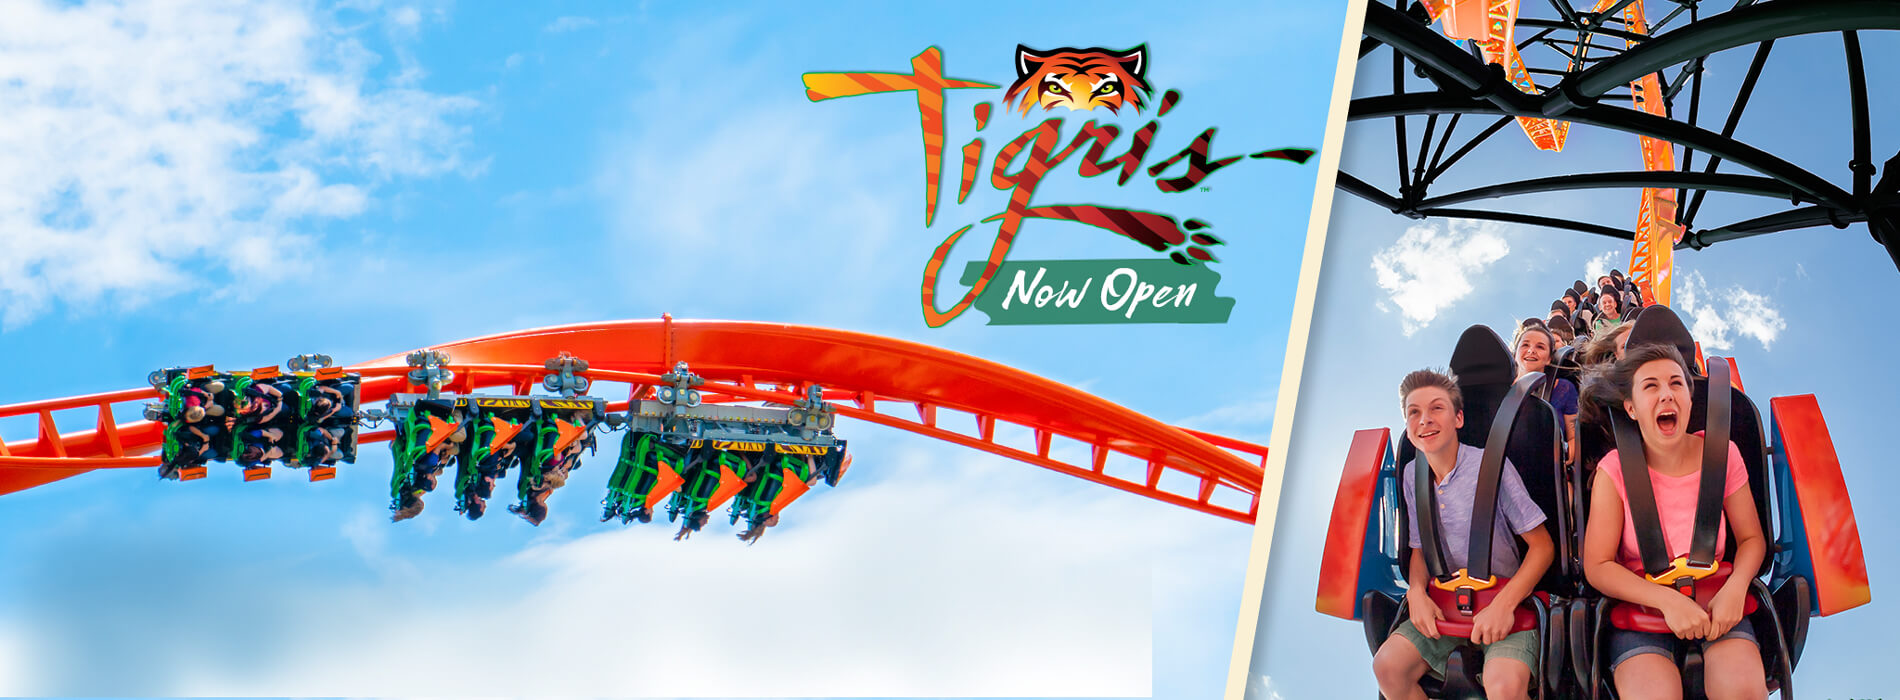 Take on Tigris - NEW - Florida's Tallest Launch Coaster - at Busch Gardens Tampa Bay - NOW OPEN!